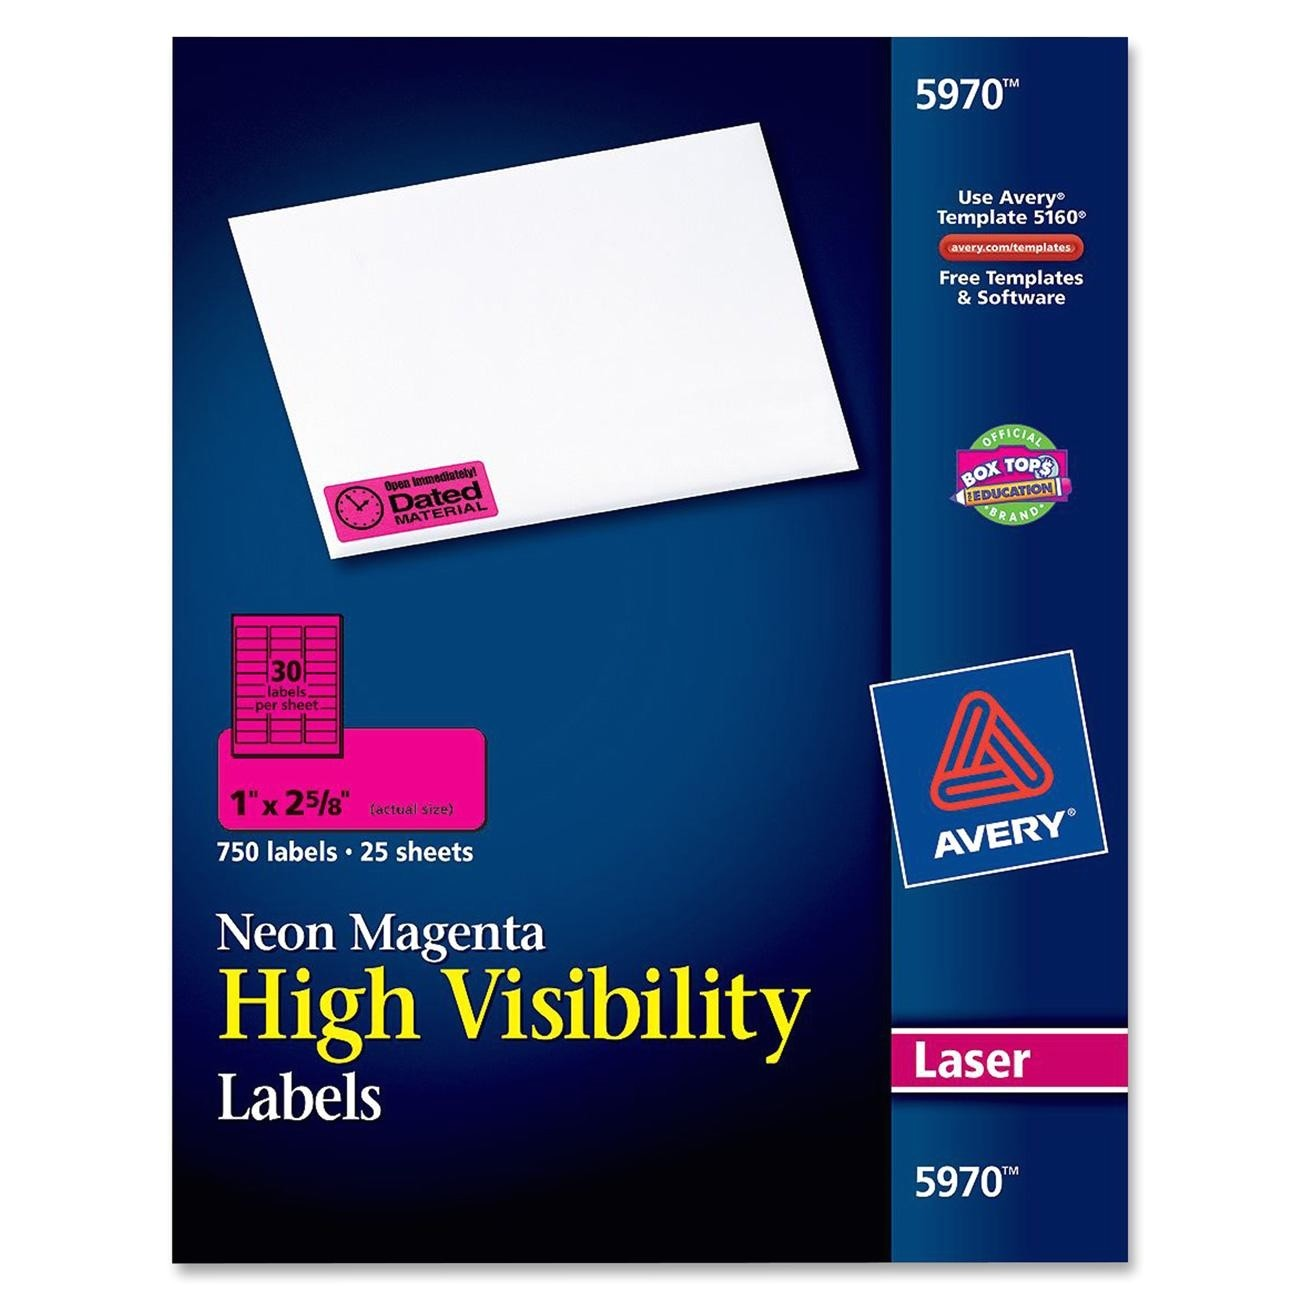 avery ave5970 high visibility labels